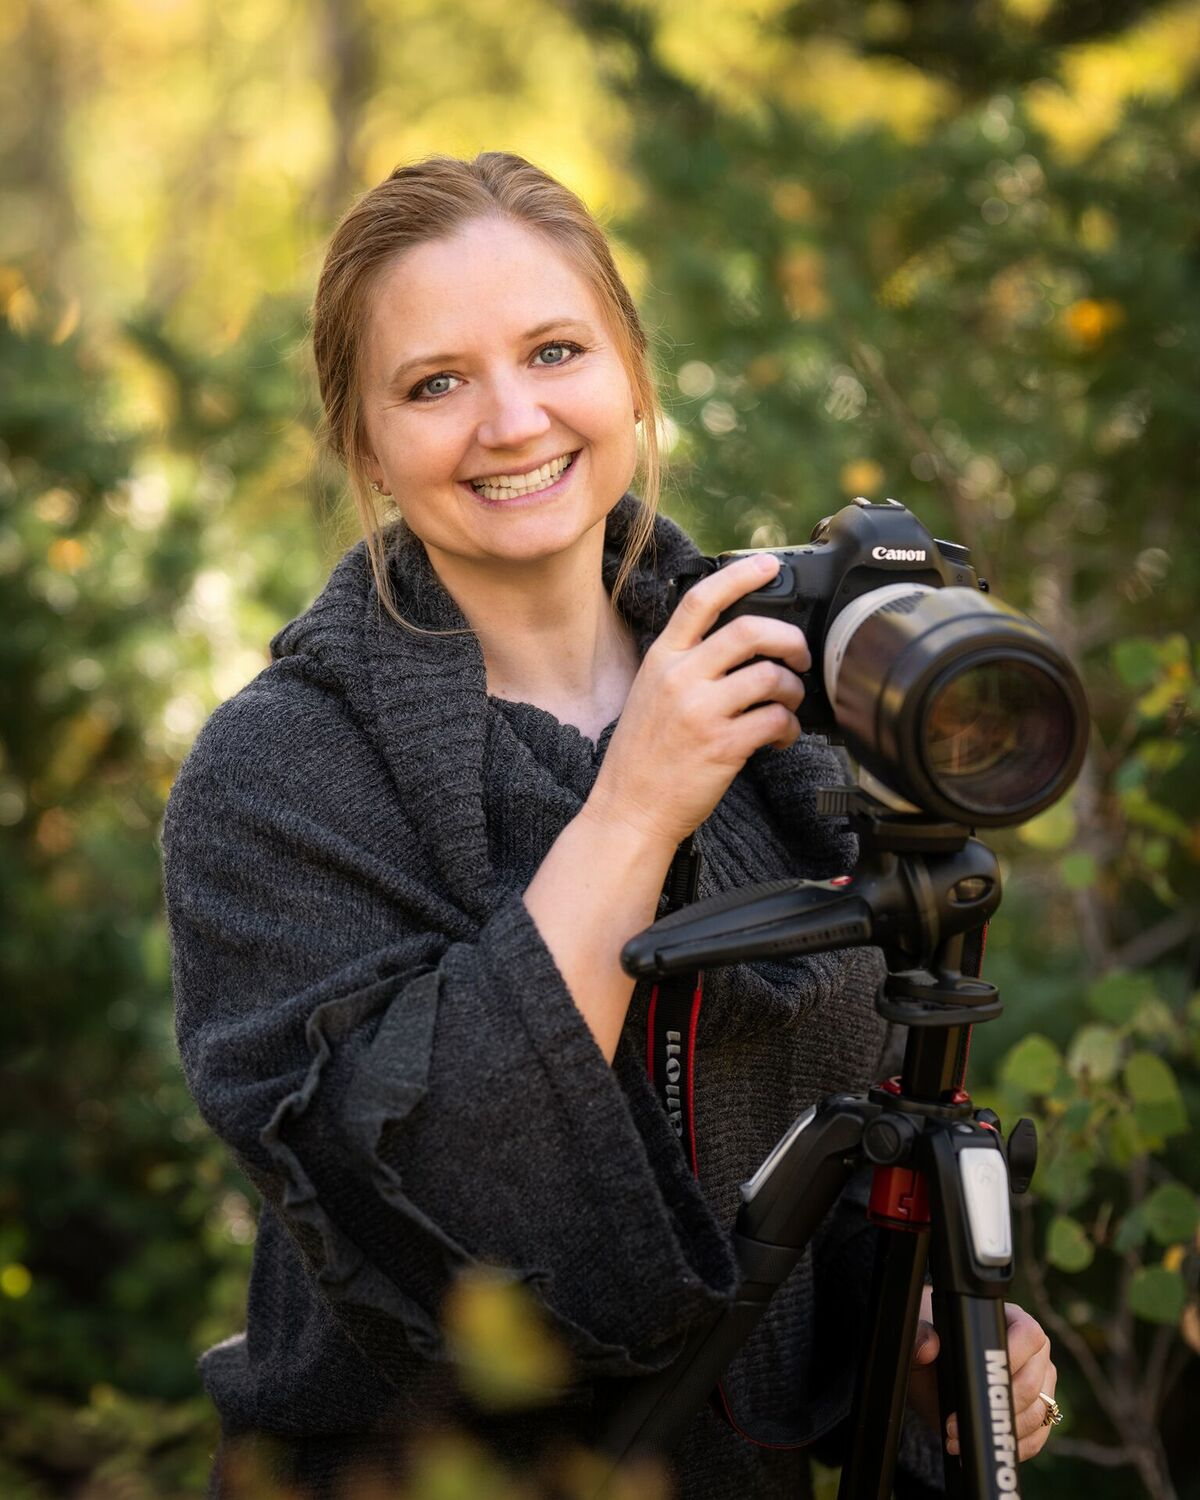 Kris Doman - Certified Professional Photographer, Master Photographer, Photographic Craftsman:Best known for my whimsical and charming children's portraiture, I have twenty years of photographic experience. My signature style combines technical mastery and emotional moments.